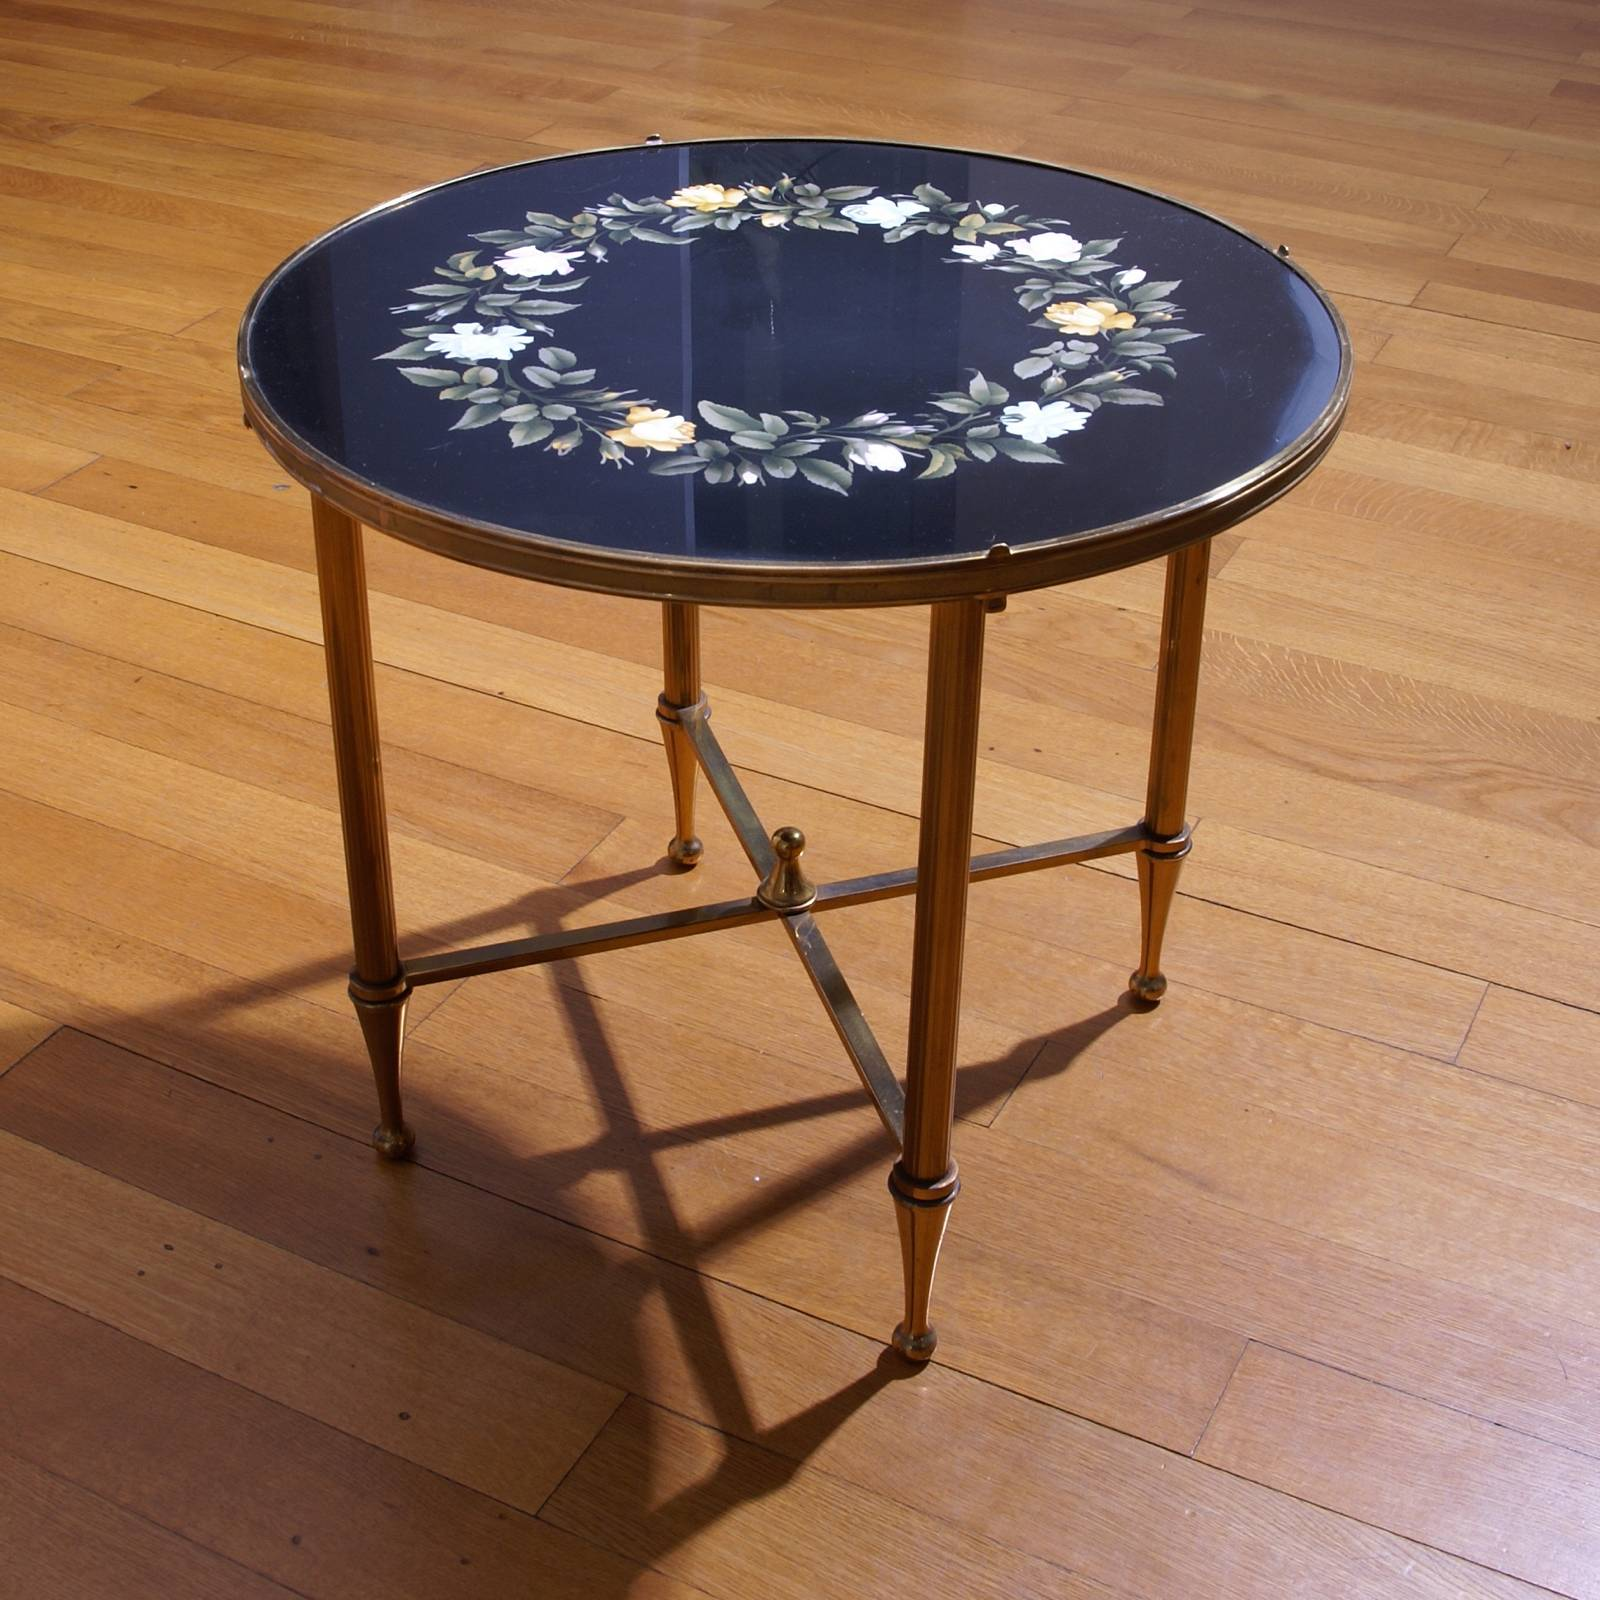 Derbyshire Black Marble Table